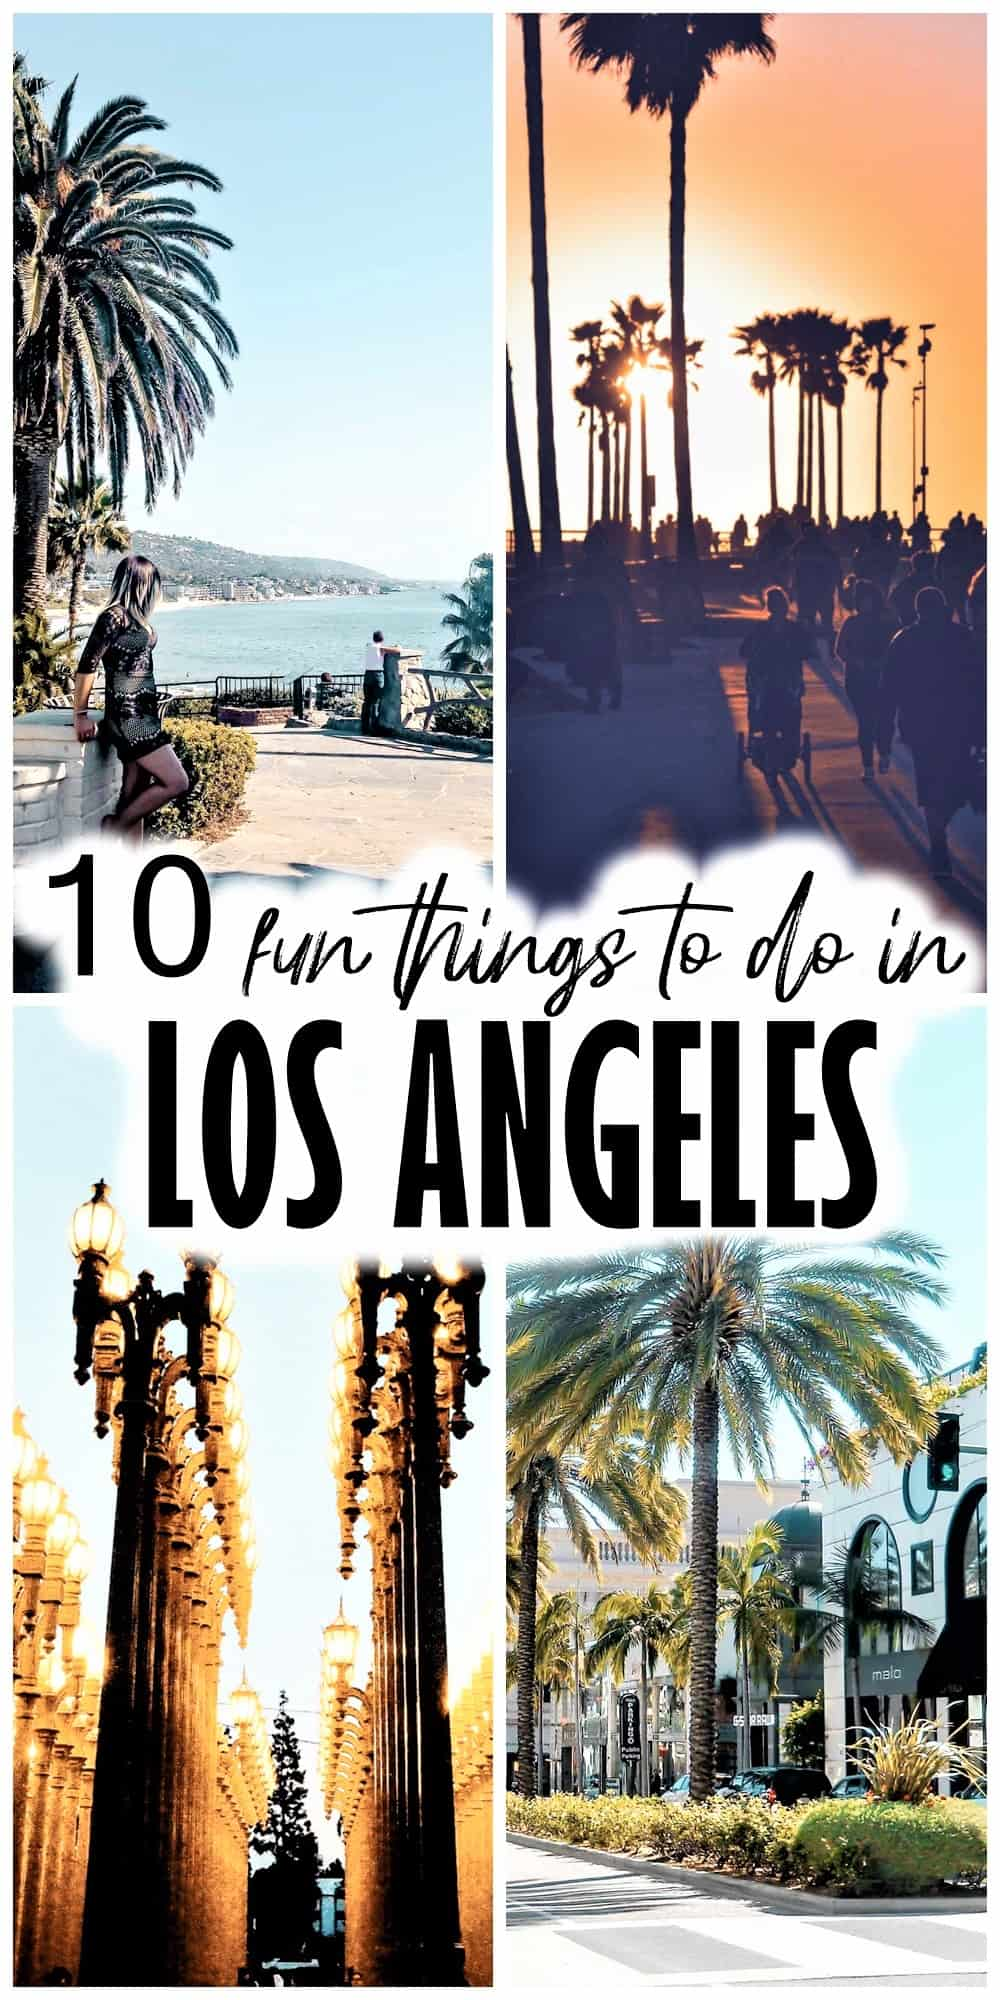 10 fun things to do in LA | los angeles top attractions | fun activities in los angeles | free stuff to do in Los Angeles